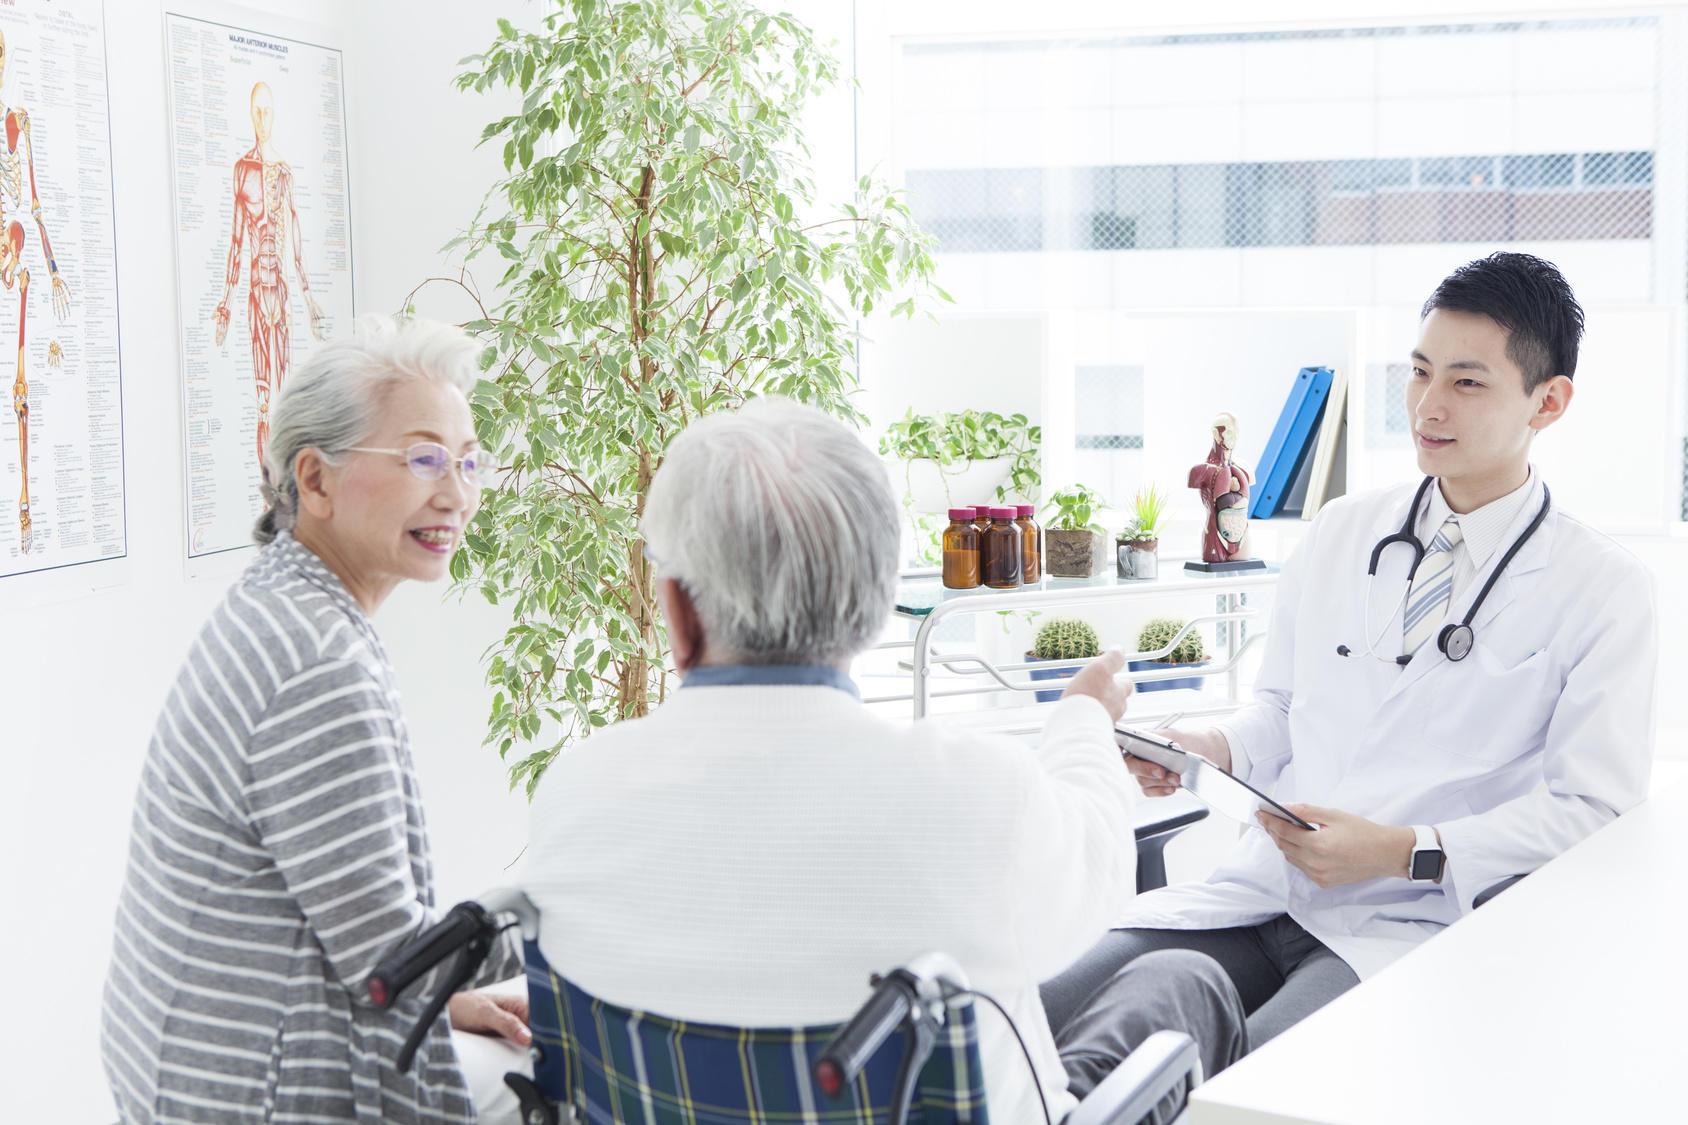 A young doctor and an elderly patient have a happy conversation